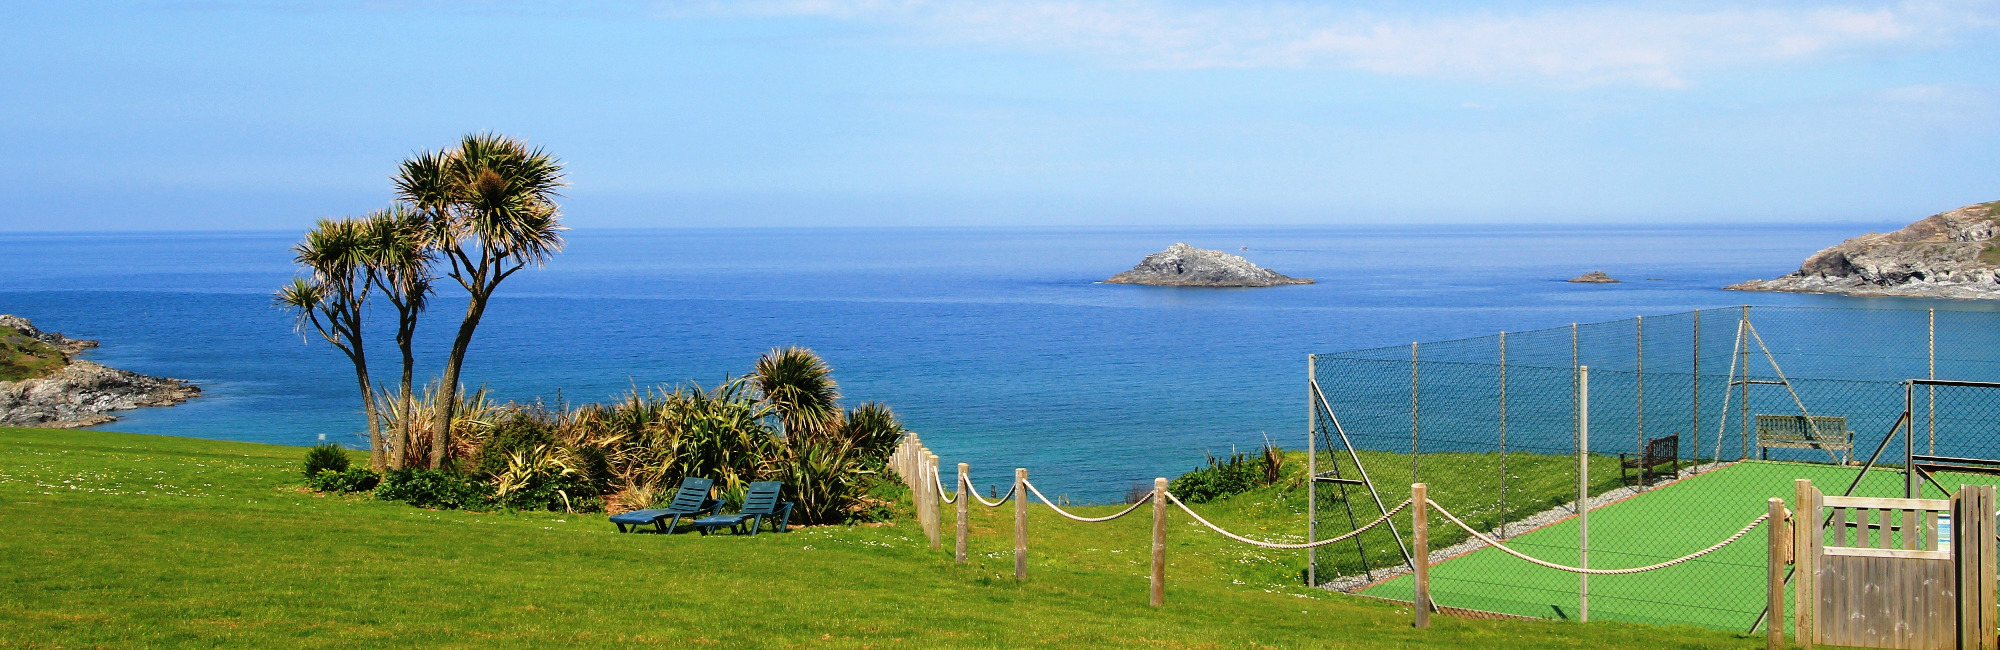 Crantock Bay Apartment Sea view - Holiday Apartments